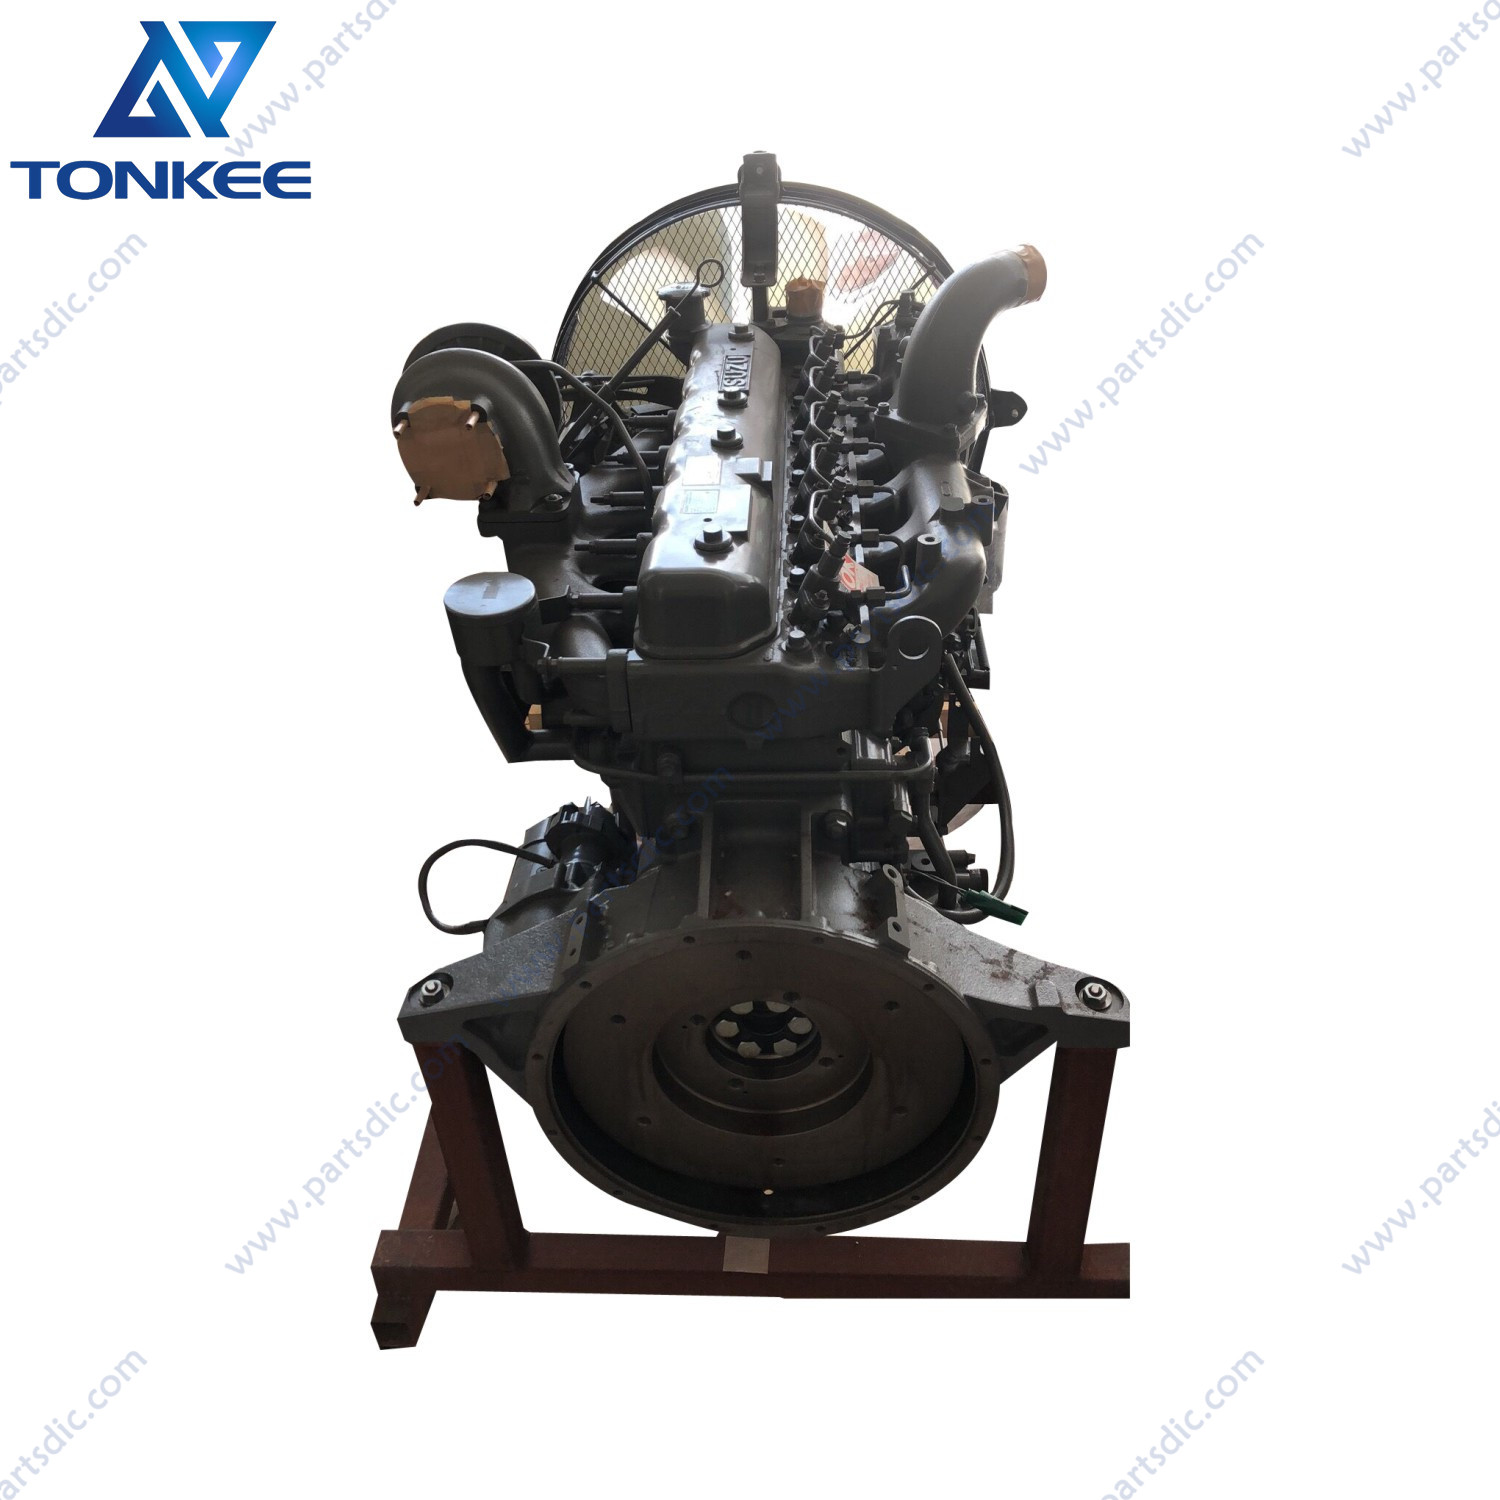 construction machinery parts EX200-2 EX200-3 EX200-5 ZX200LC ZX200-3G excavator diesel engine assembly 4489383 6BD1 AA-6BG1 TRA complete diesel engine assy